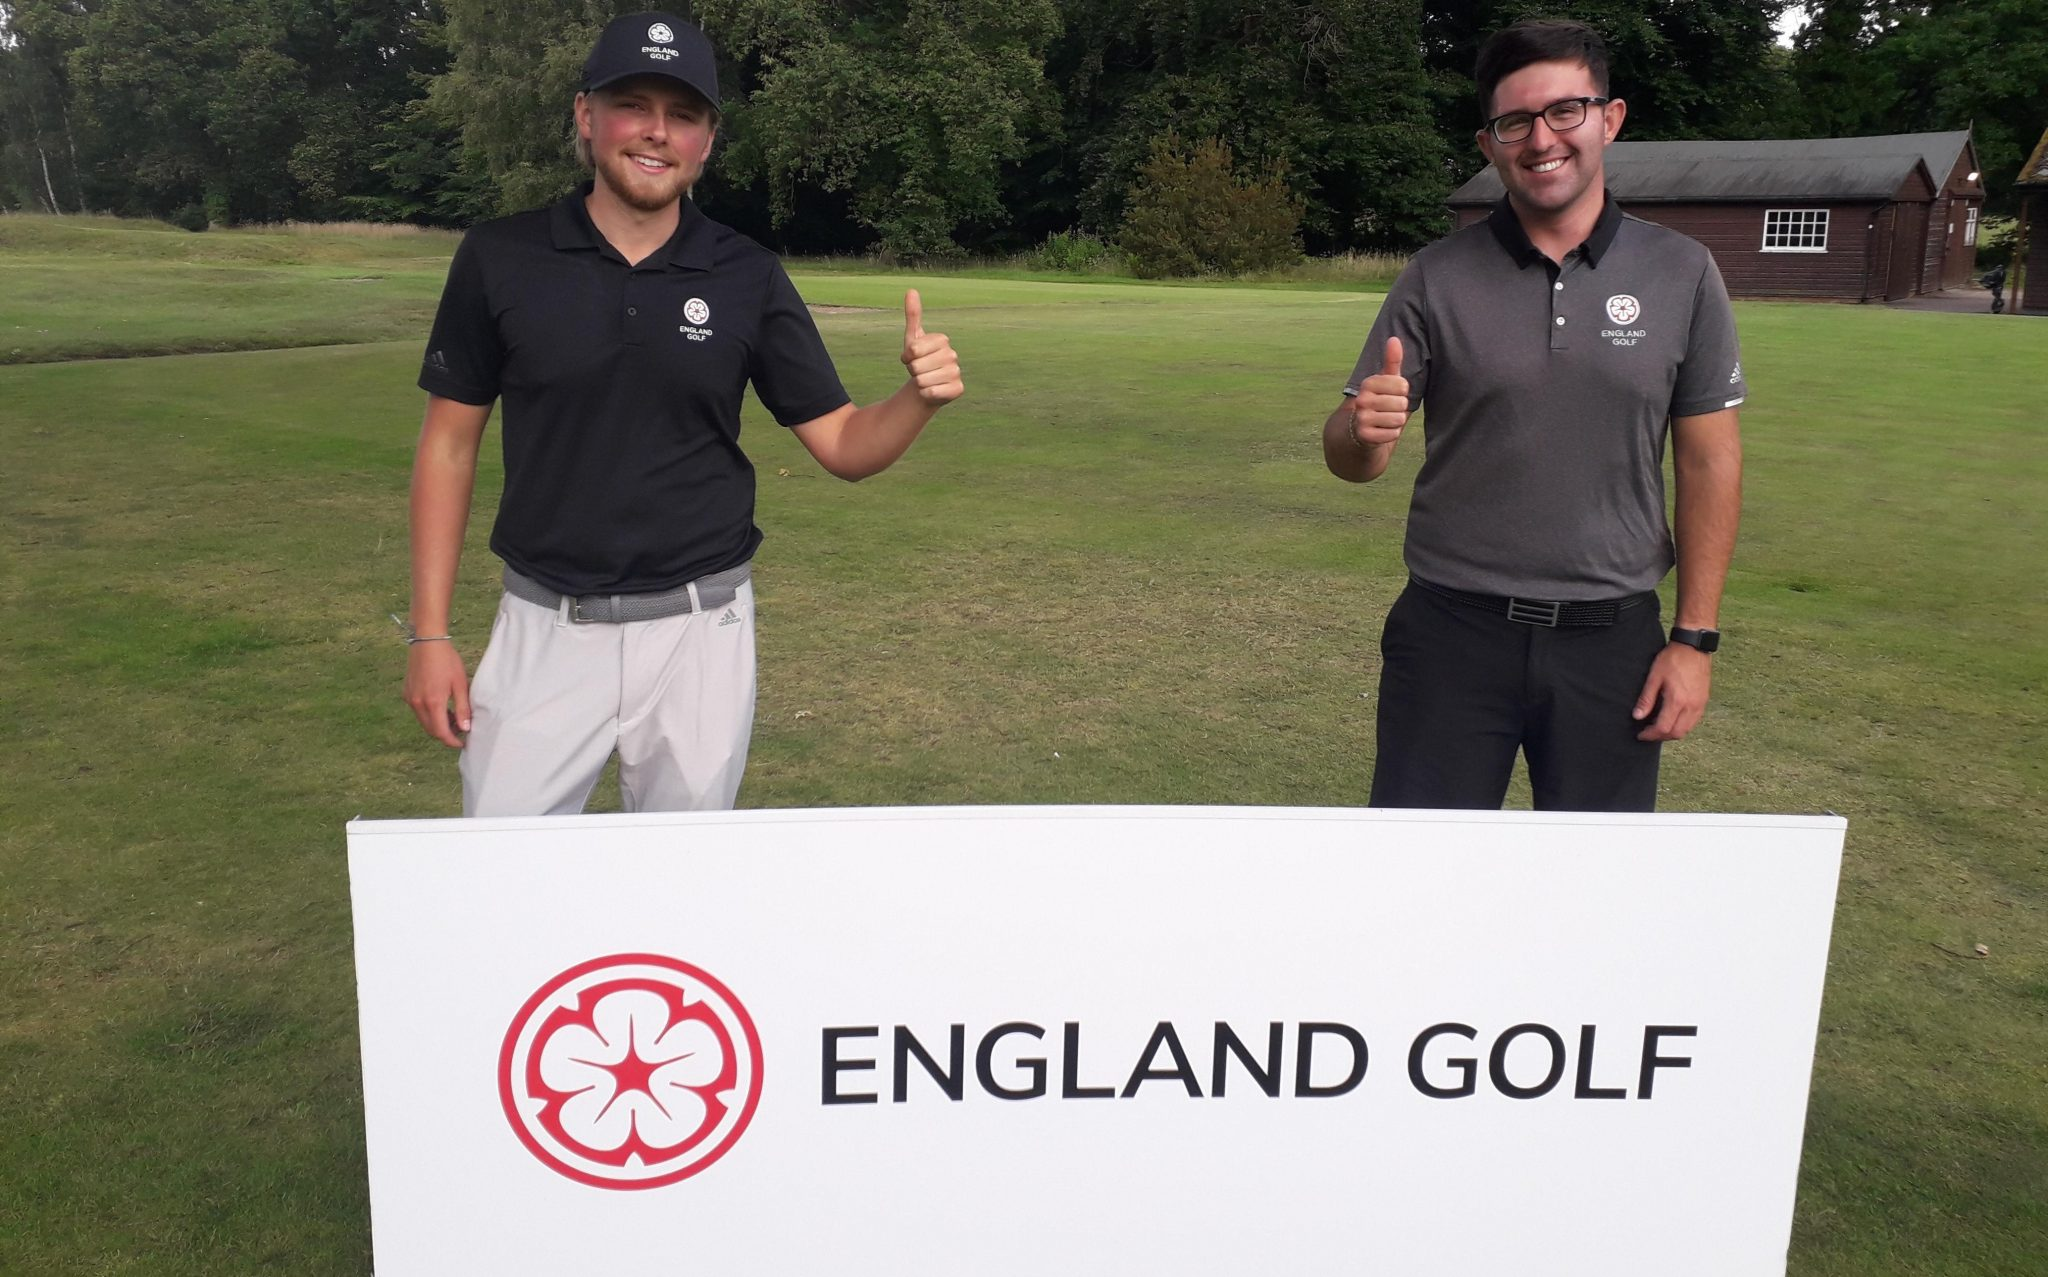 Day Two – Men's Amateur: England duo hit Route 66 on way to match play